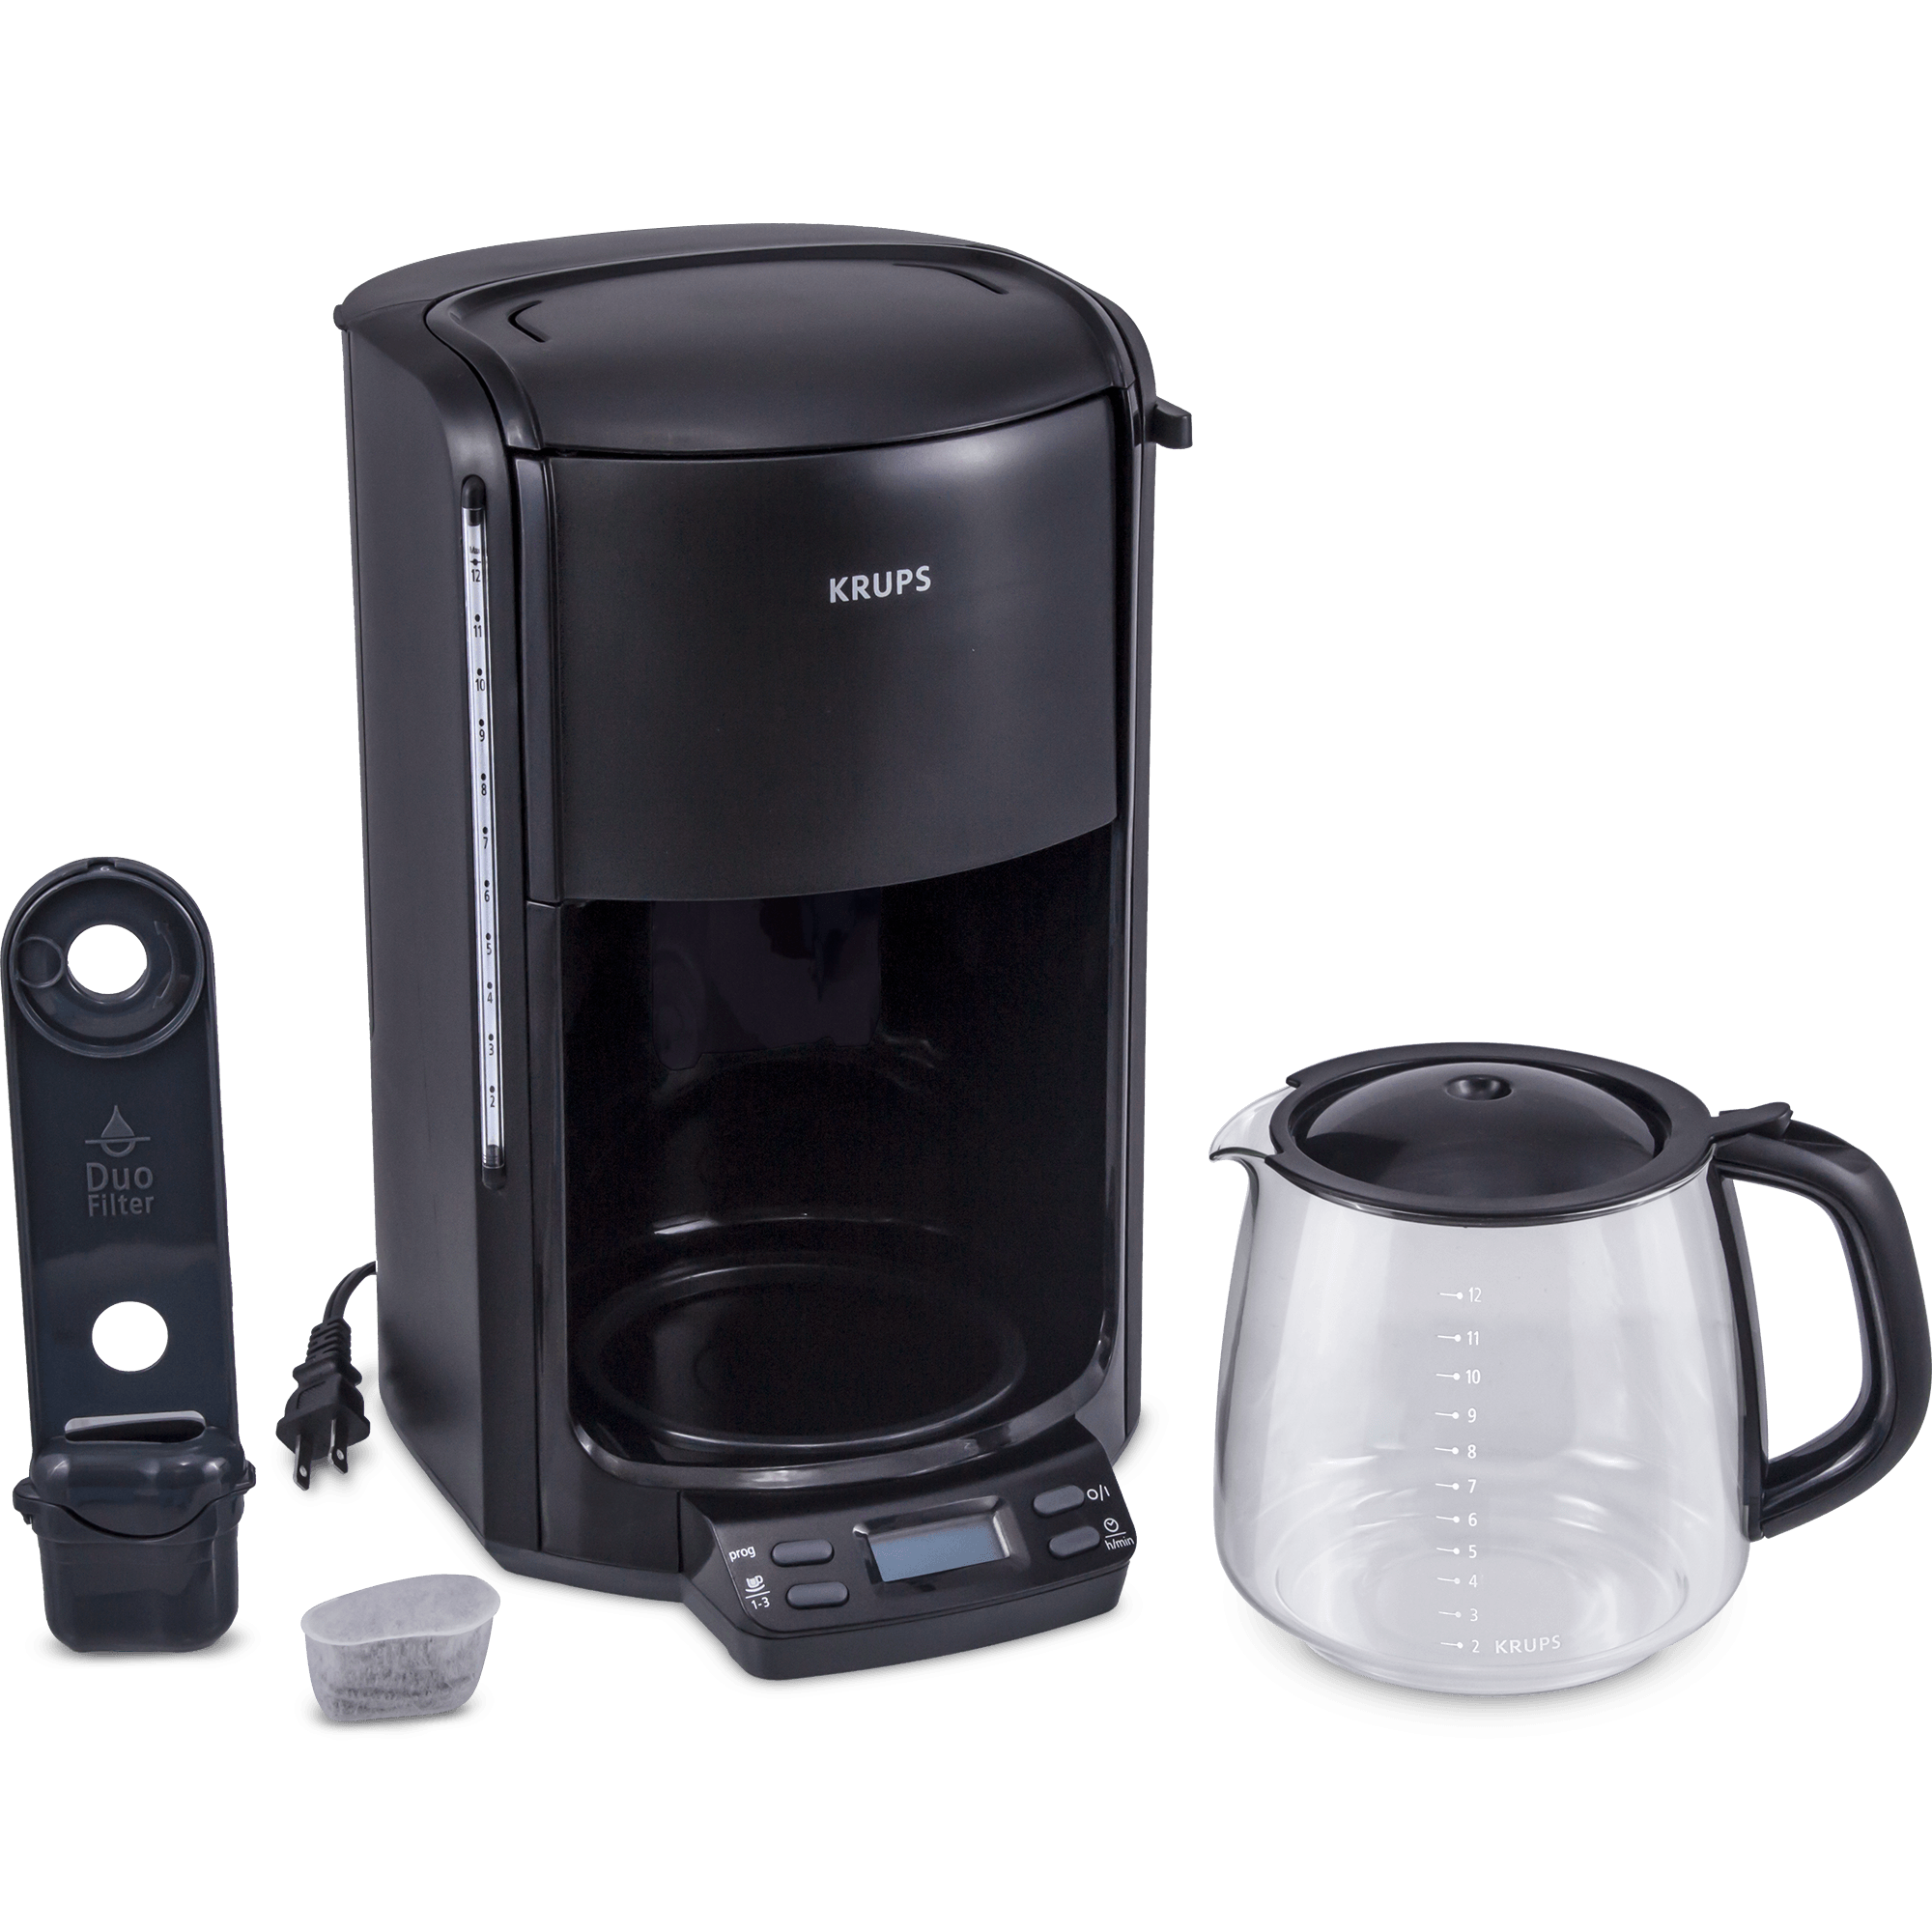 Krups Coffee Maker Km1000 Manual : KRUPS Programmable Coffee Maker (Refurbished)